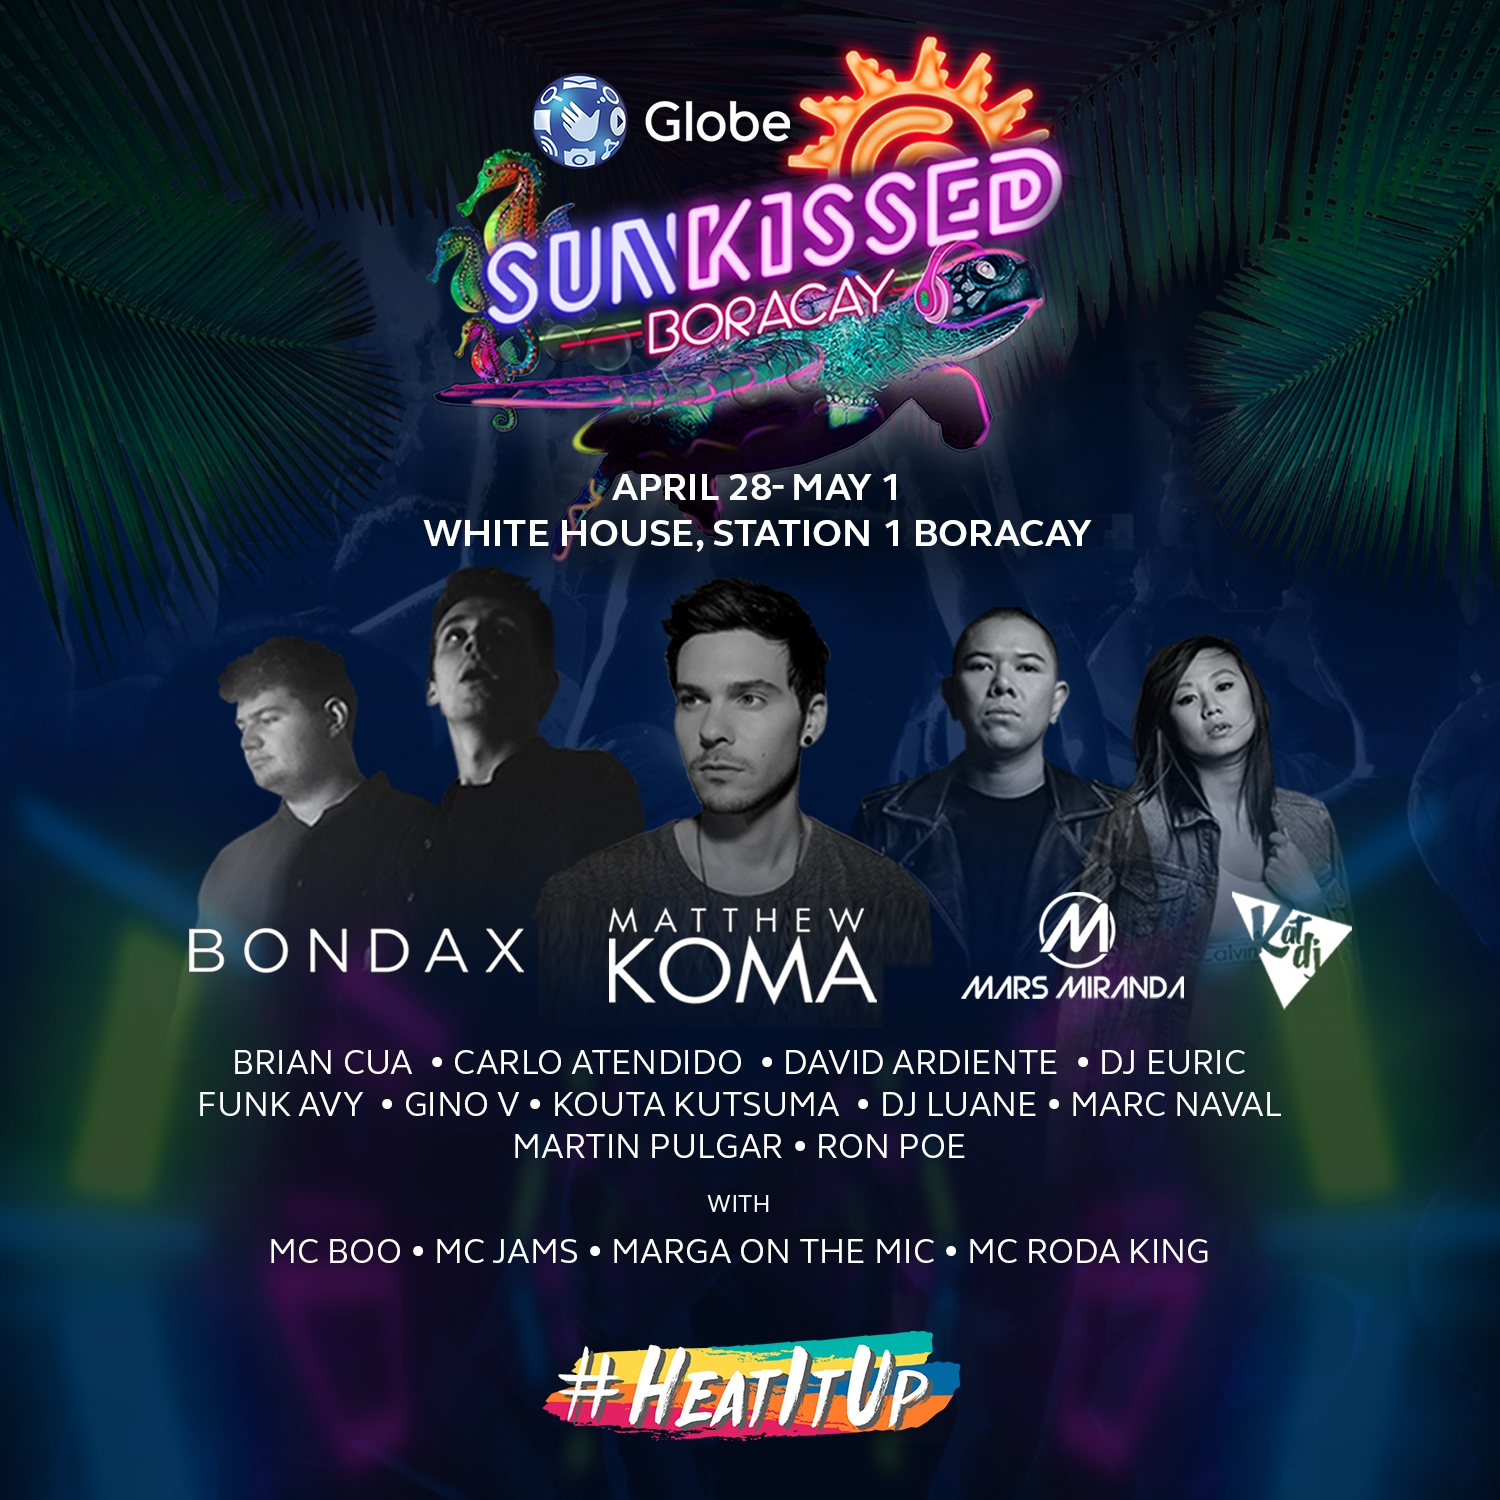 Why you should spend Labor Day weekend with #GlobeBoracay